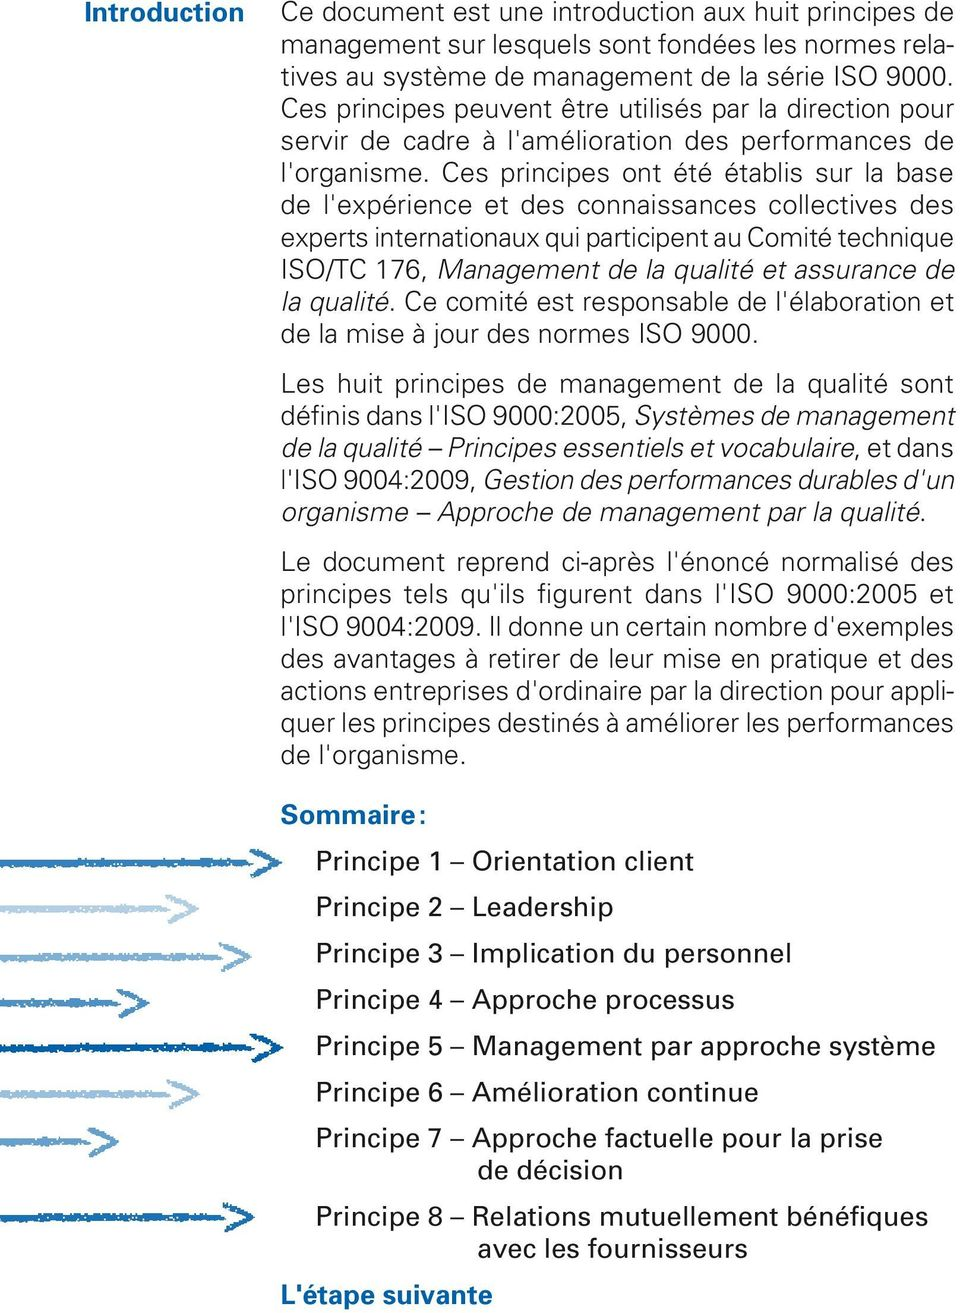 Ces principes ont été établis sur la base de l'expérience et des connaissances collectives des experts internationaux qui participent au Comité technique ISO/TC 176, Management de la qualité et